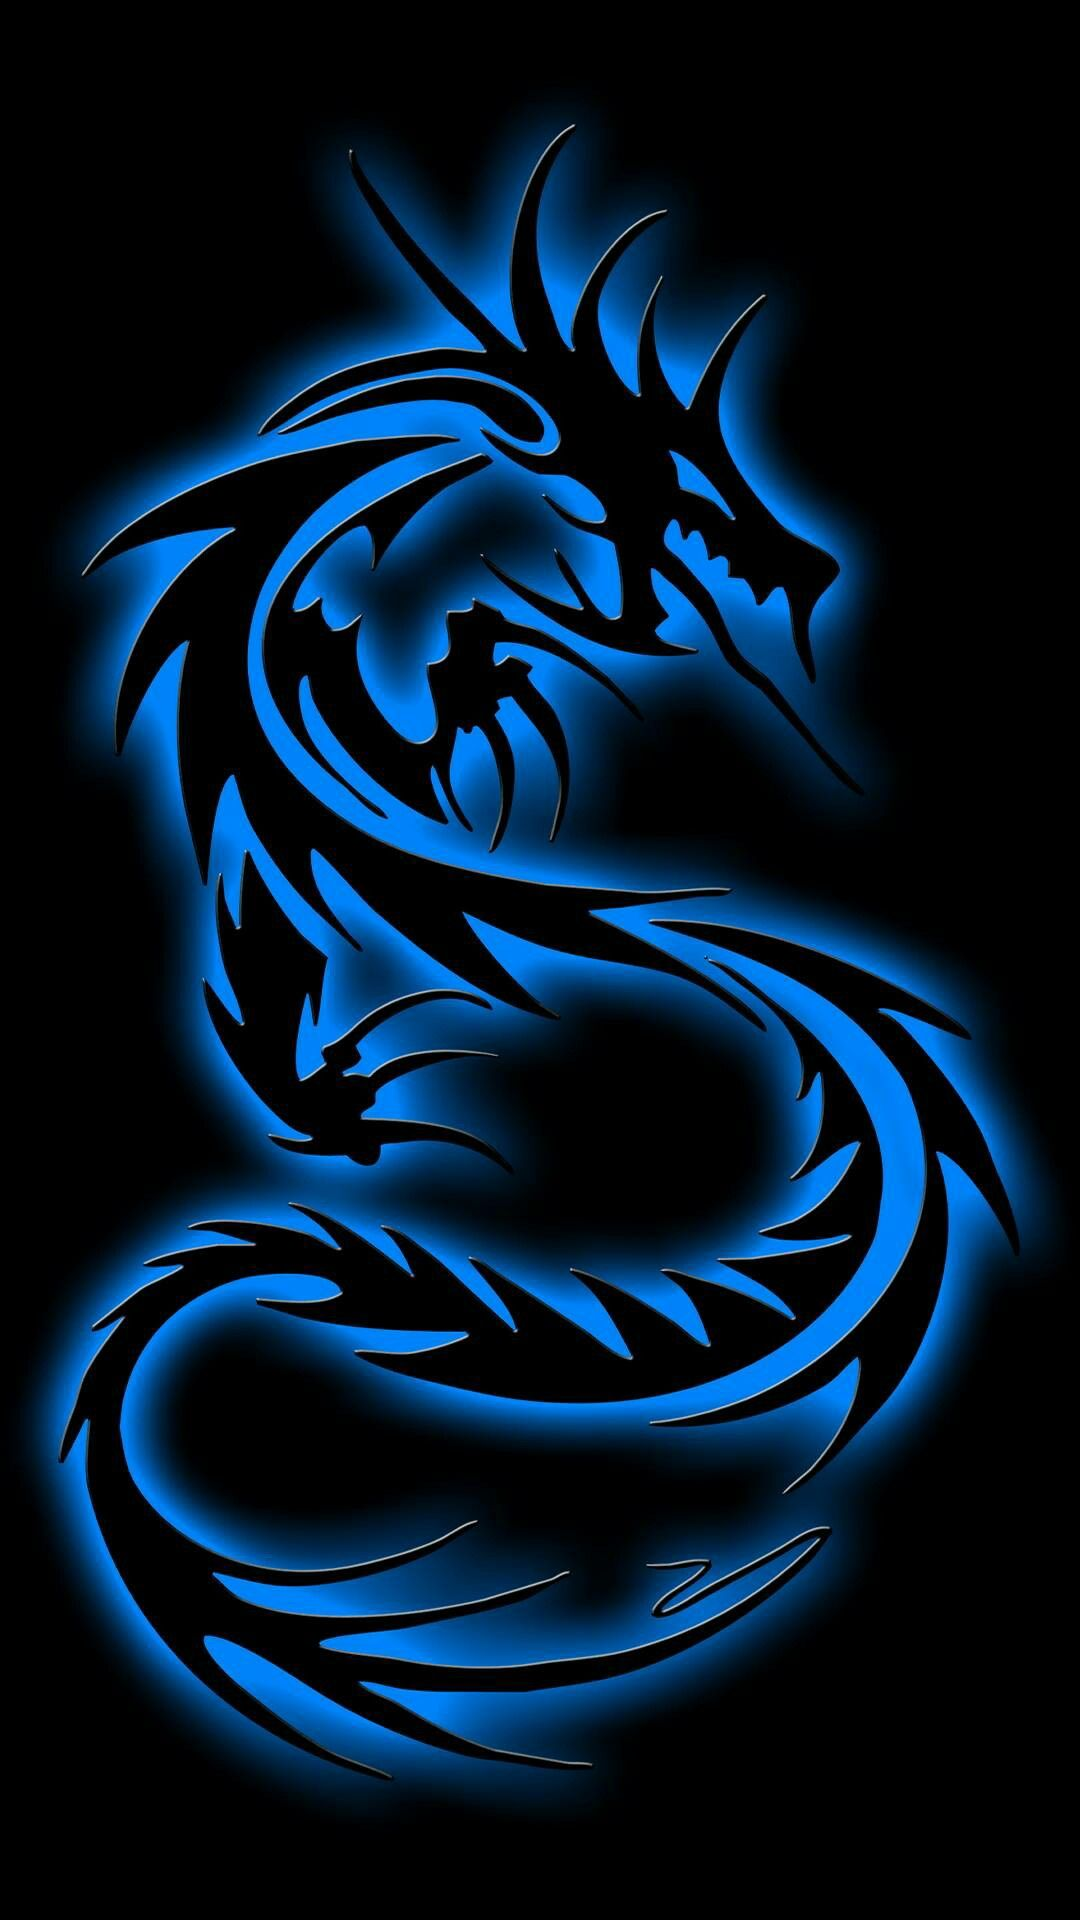 Blue Neon Dragon Tribal Dragon Tattoos Dragon Artwork Dragon